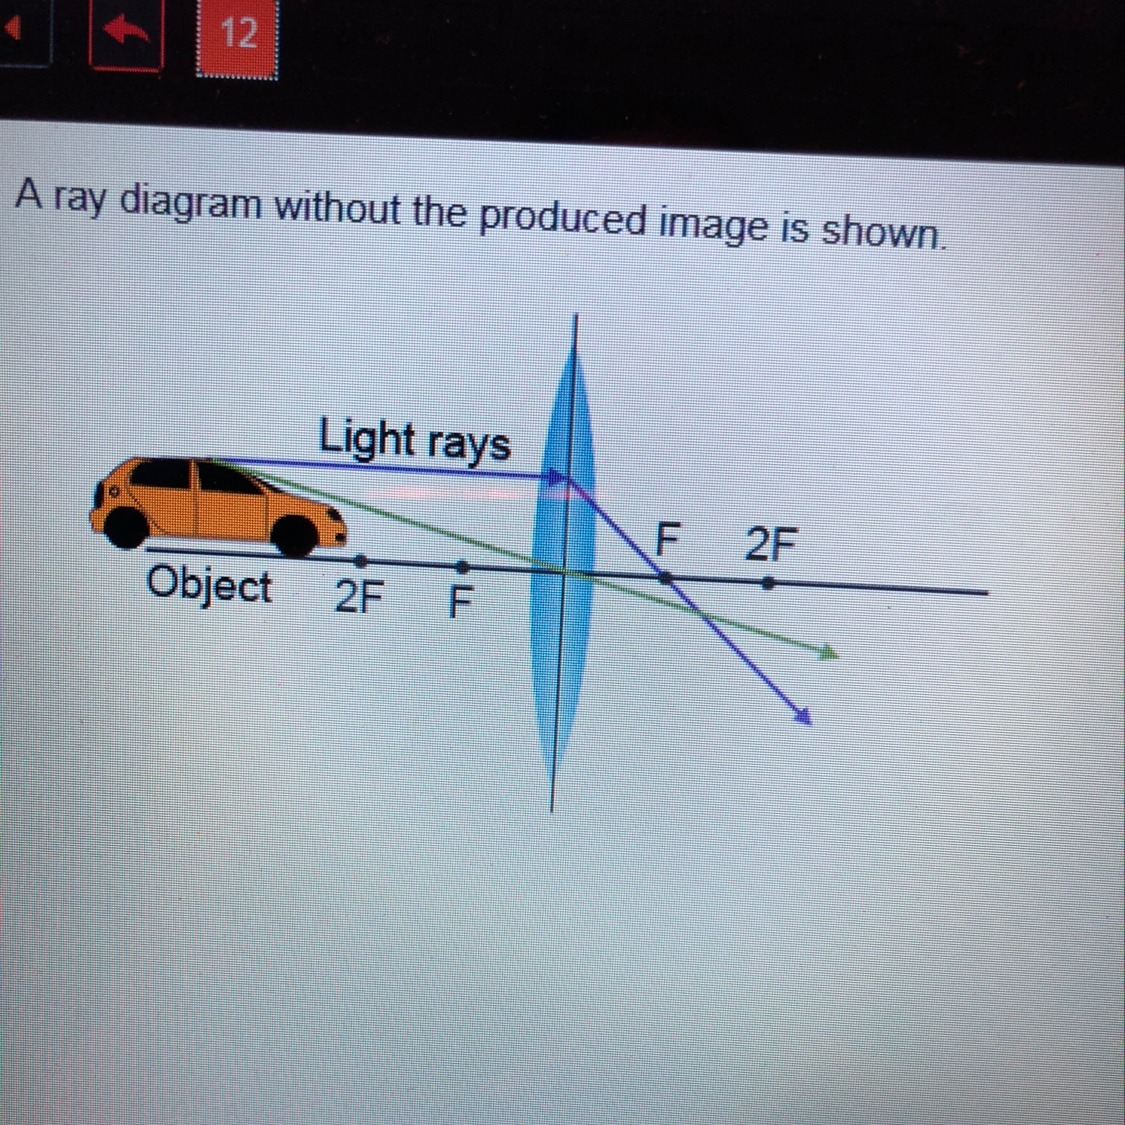 hight resolution of a ray diagram without the produced image is shown which described the image produced by the lens a real and larger than the object